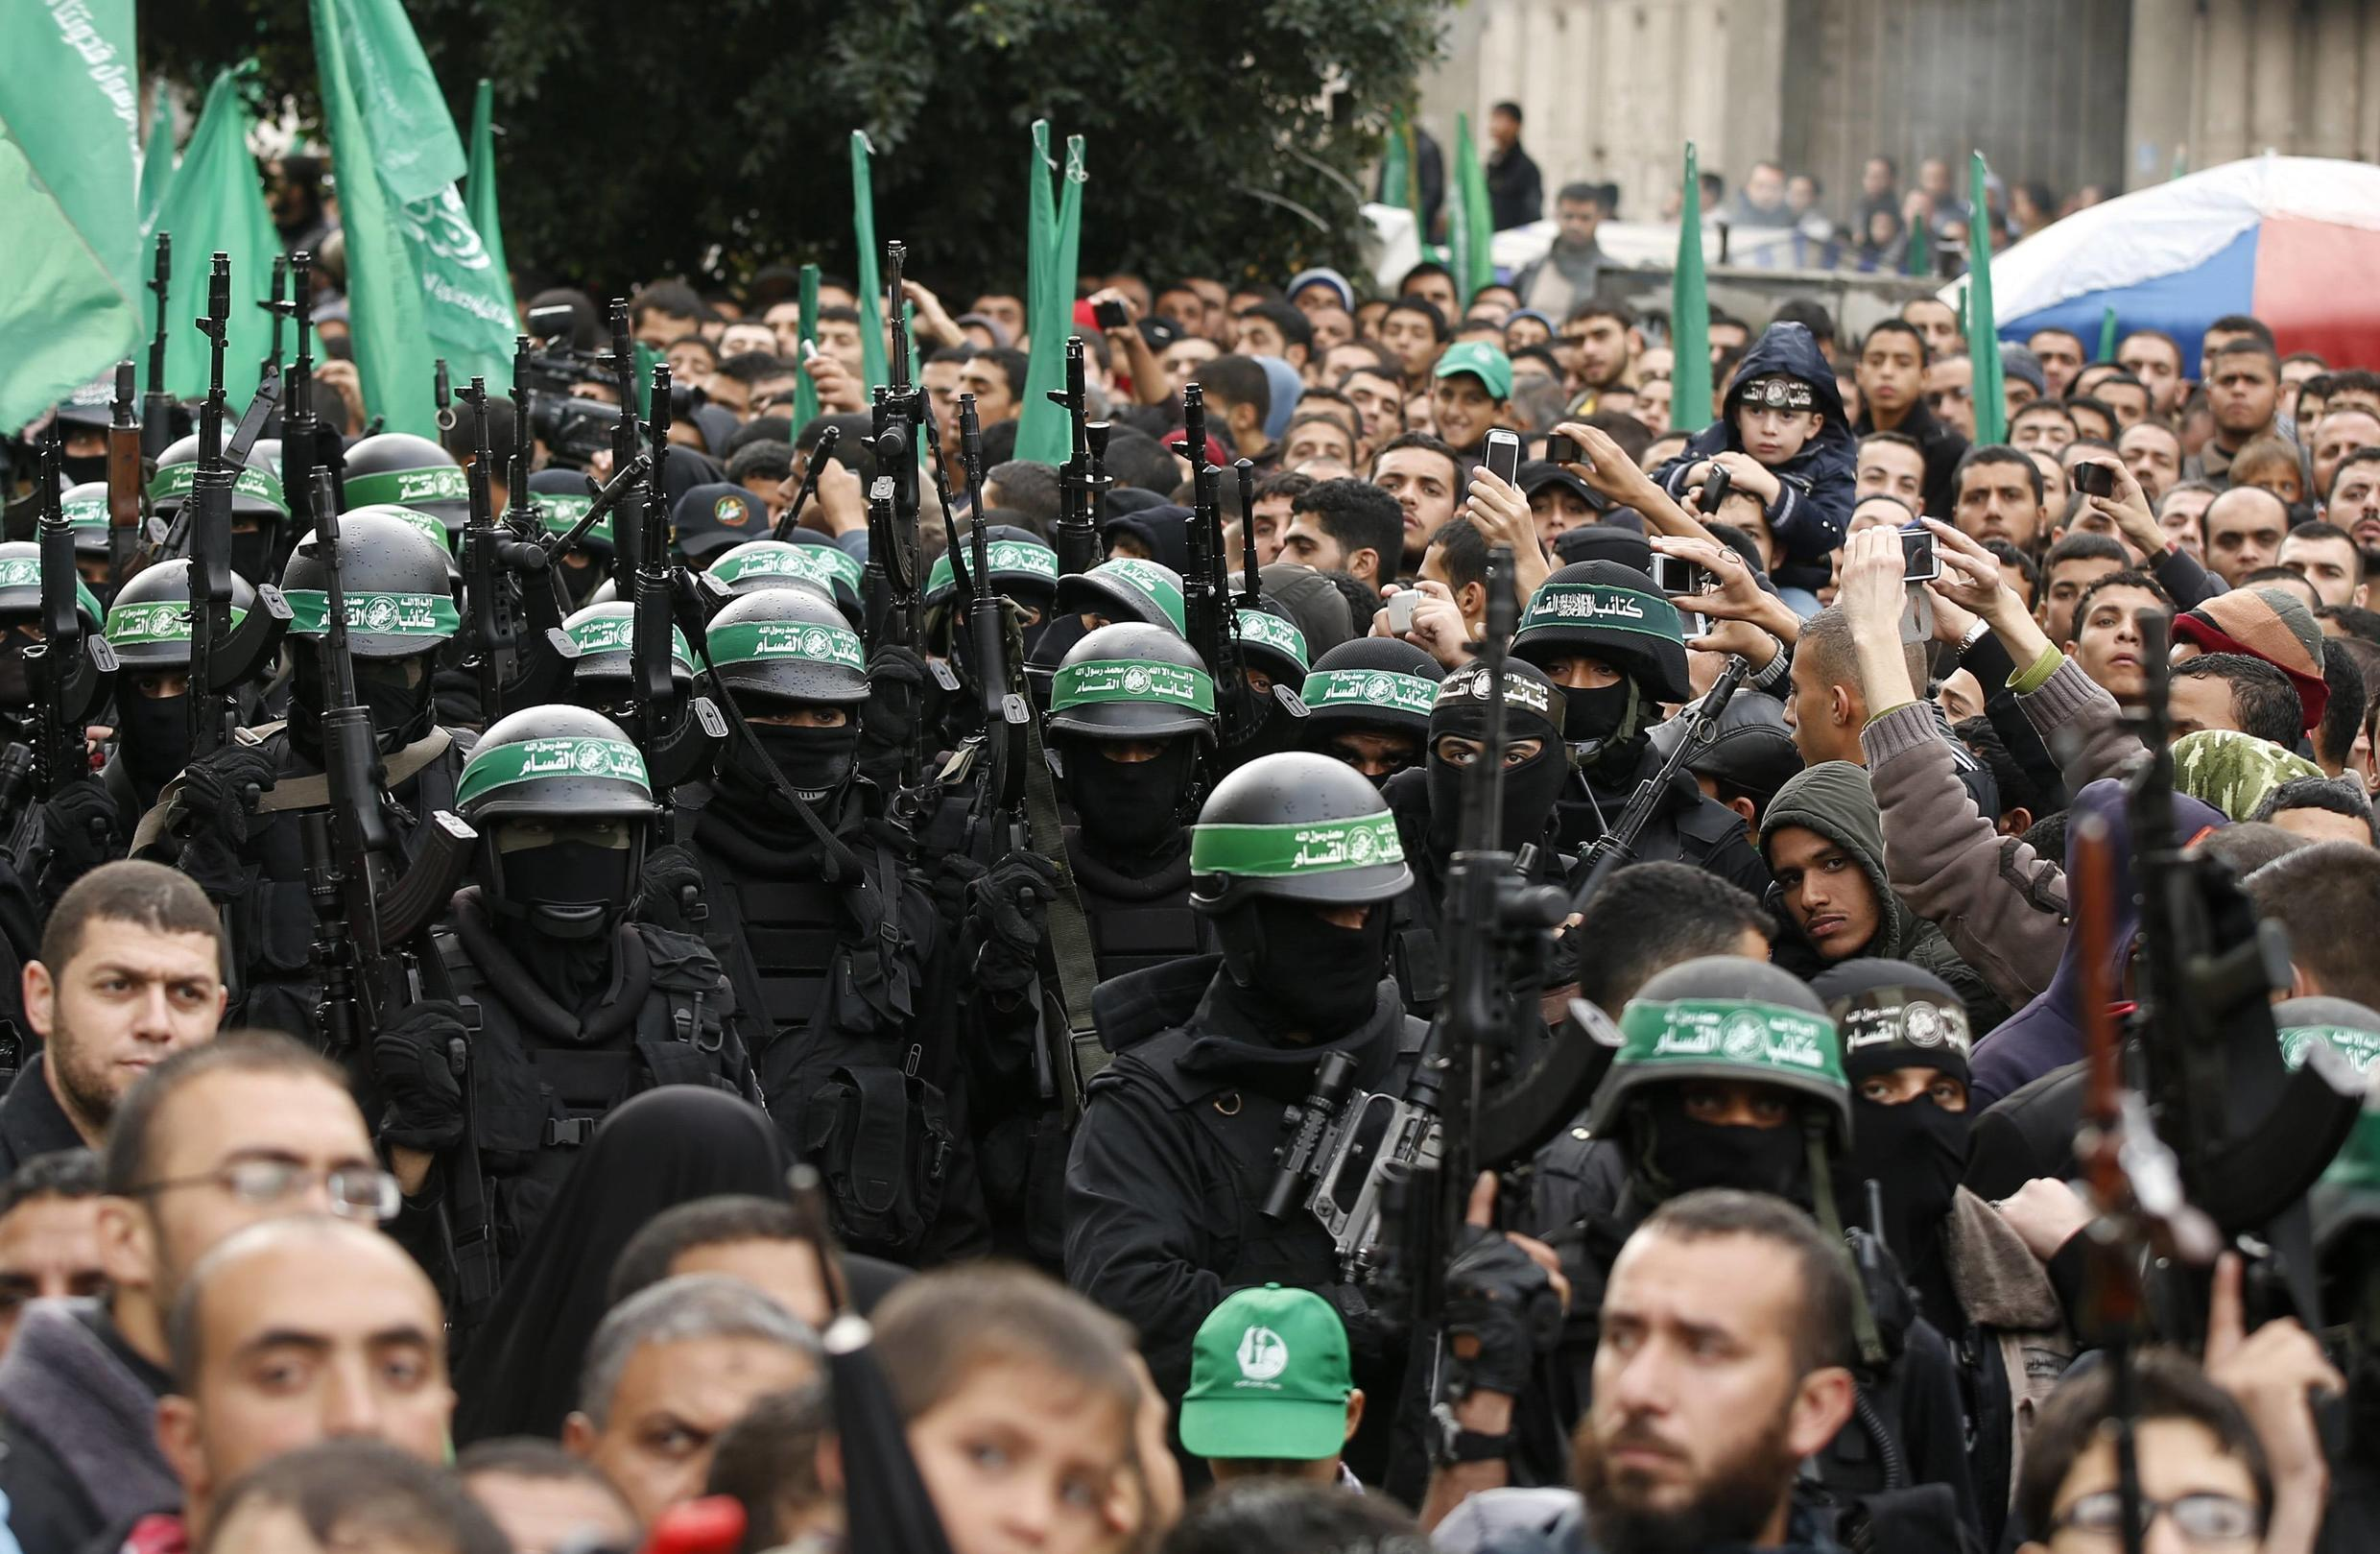 Gazans watch members of the Ezzedine al-Qassam Brigades take part in a military parade marking the 27th anniversary of Hamas's founding